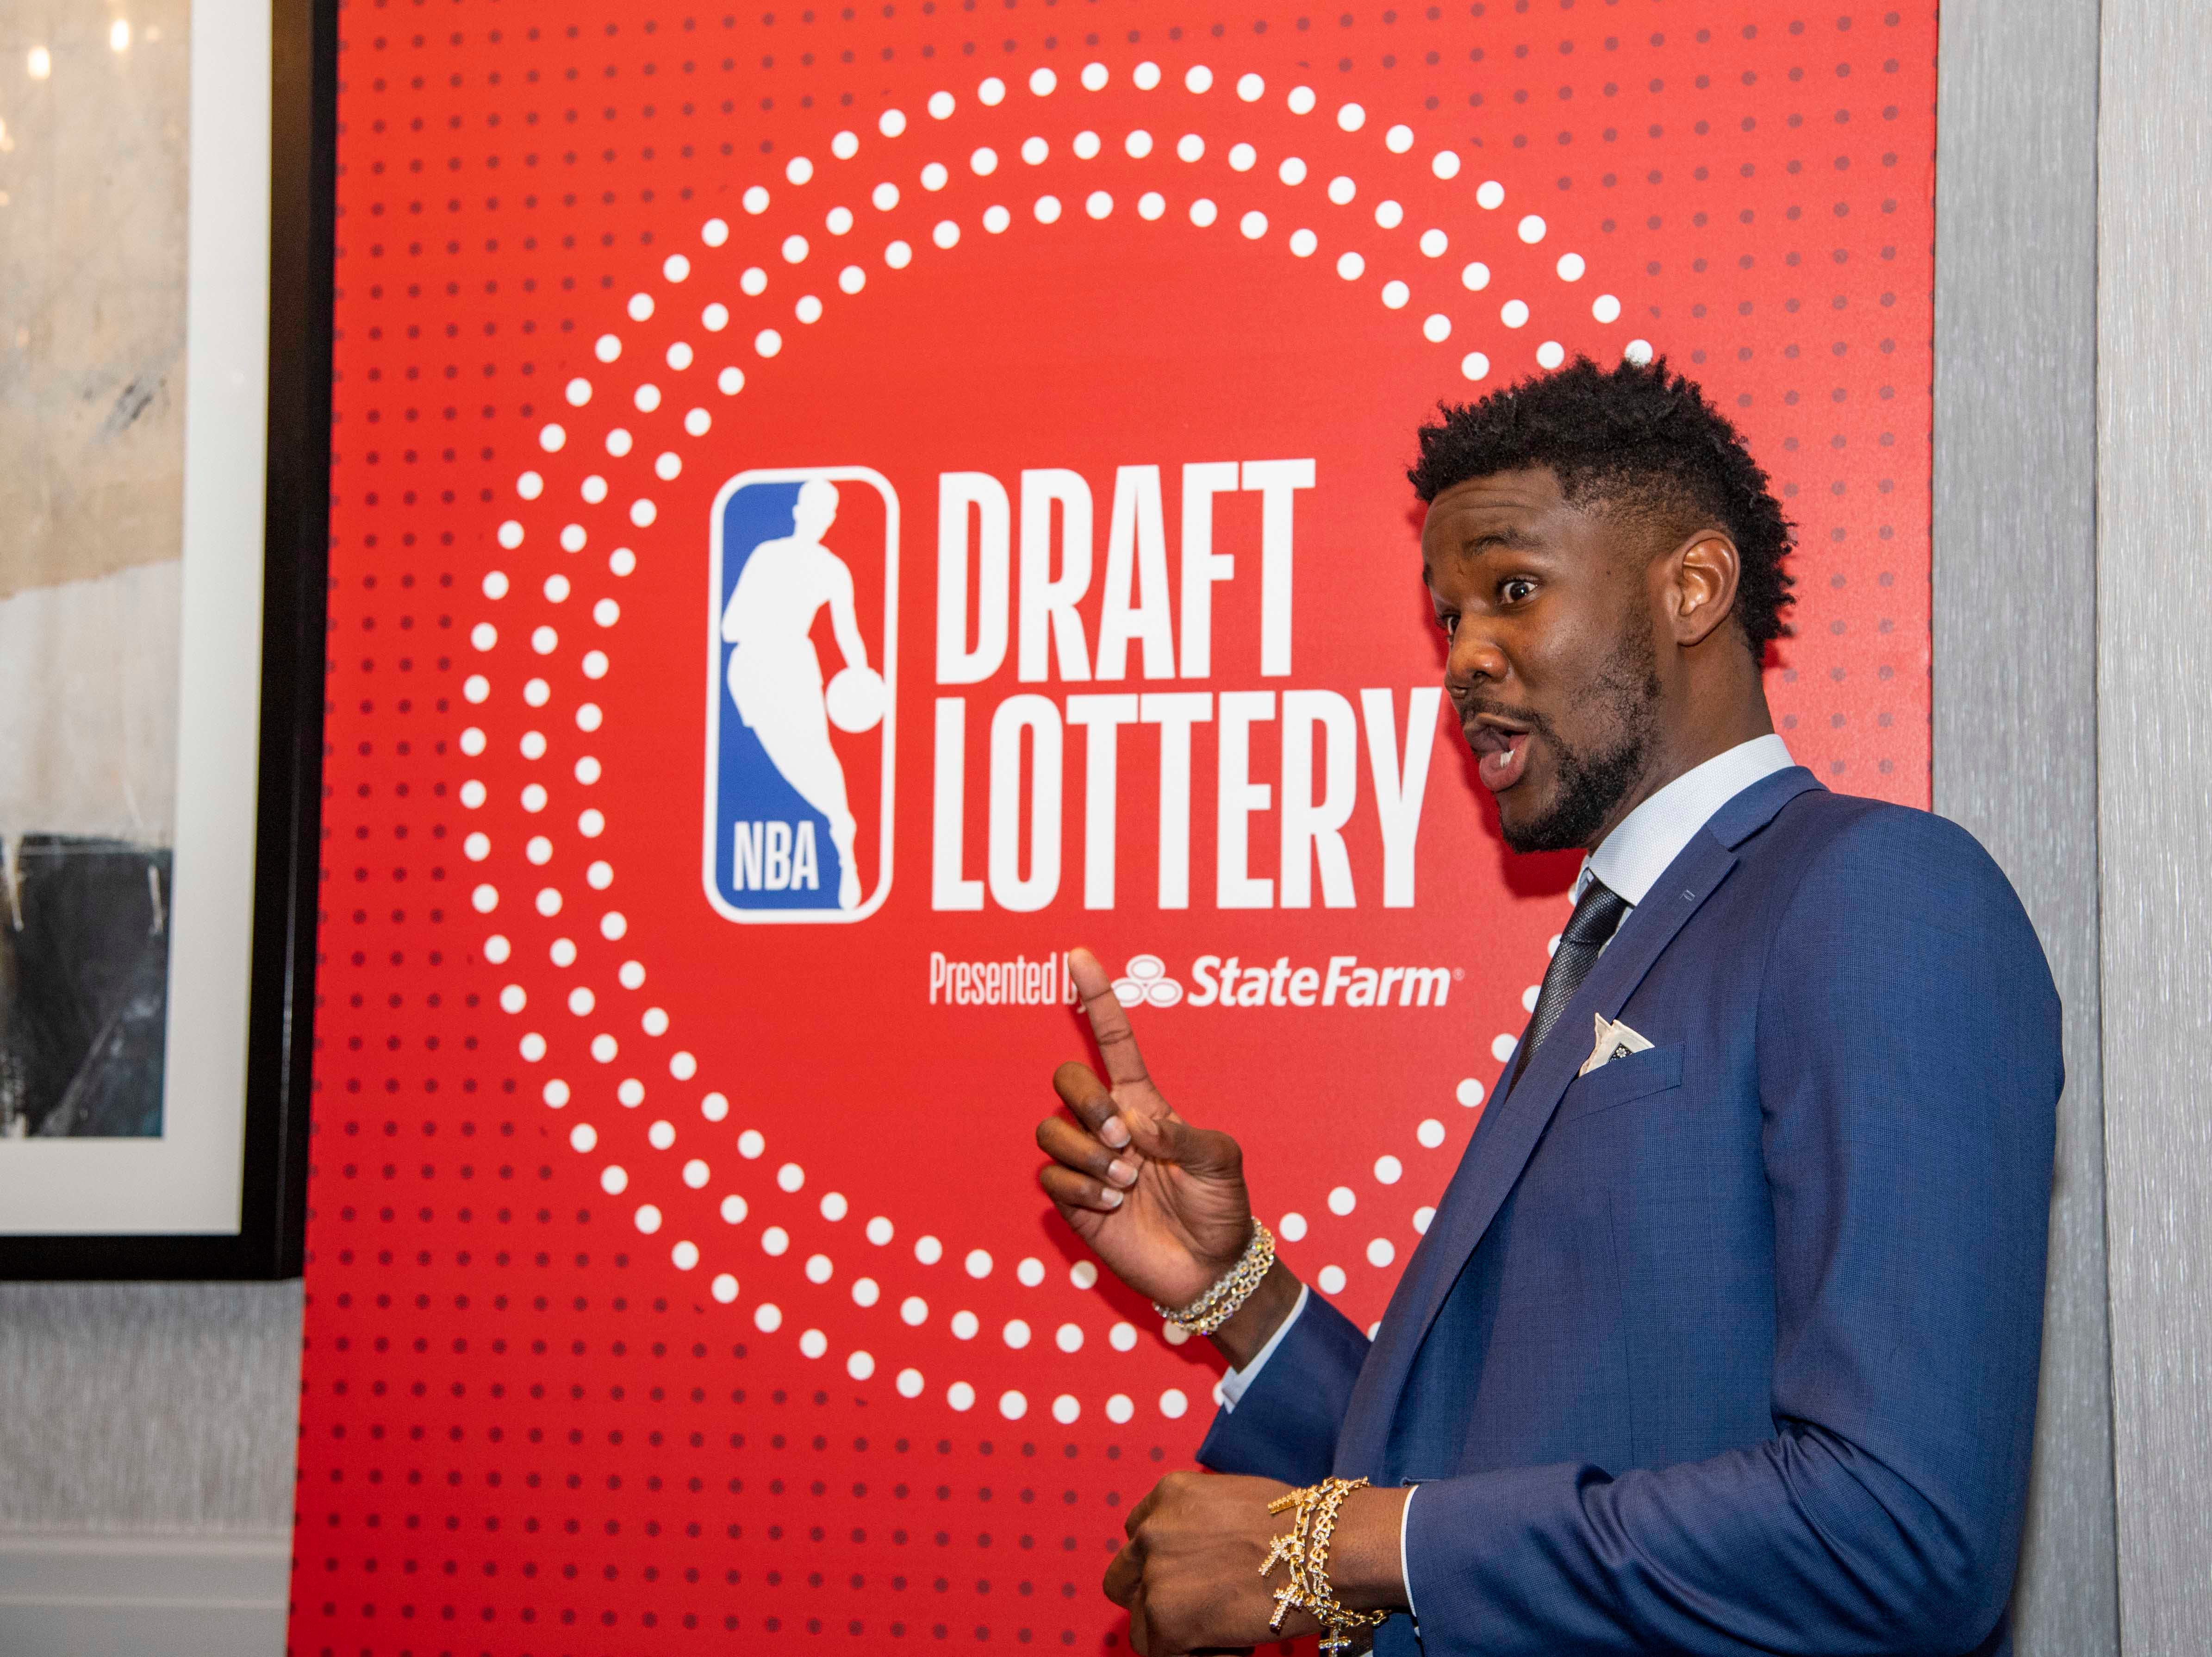 May 14, 2019; Chicago, IL, USA; Phoenix Suns player DeAndre Ayton is seen prior to the 2019 NBA Draft Lottery at the Hilton Chicago. Mandatory Credit: Patrick Gorski-USA TODAY Sports